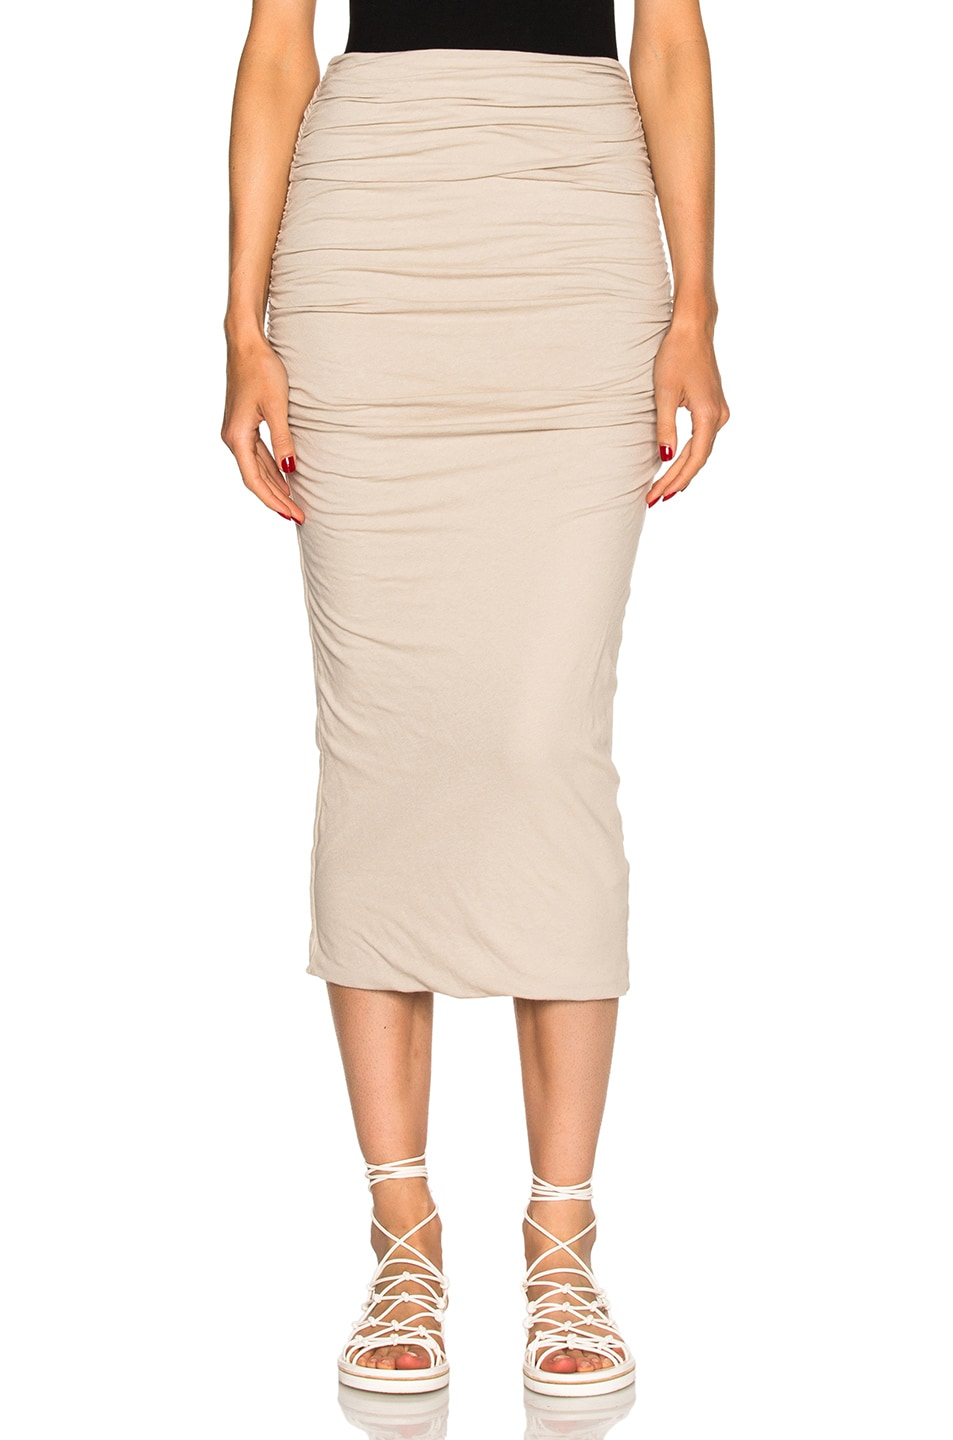 337ccc067 Image 1 of James Perse Shirred Tube Skirt in Driftwood